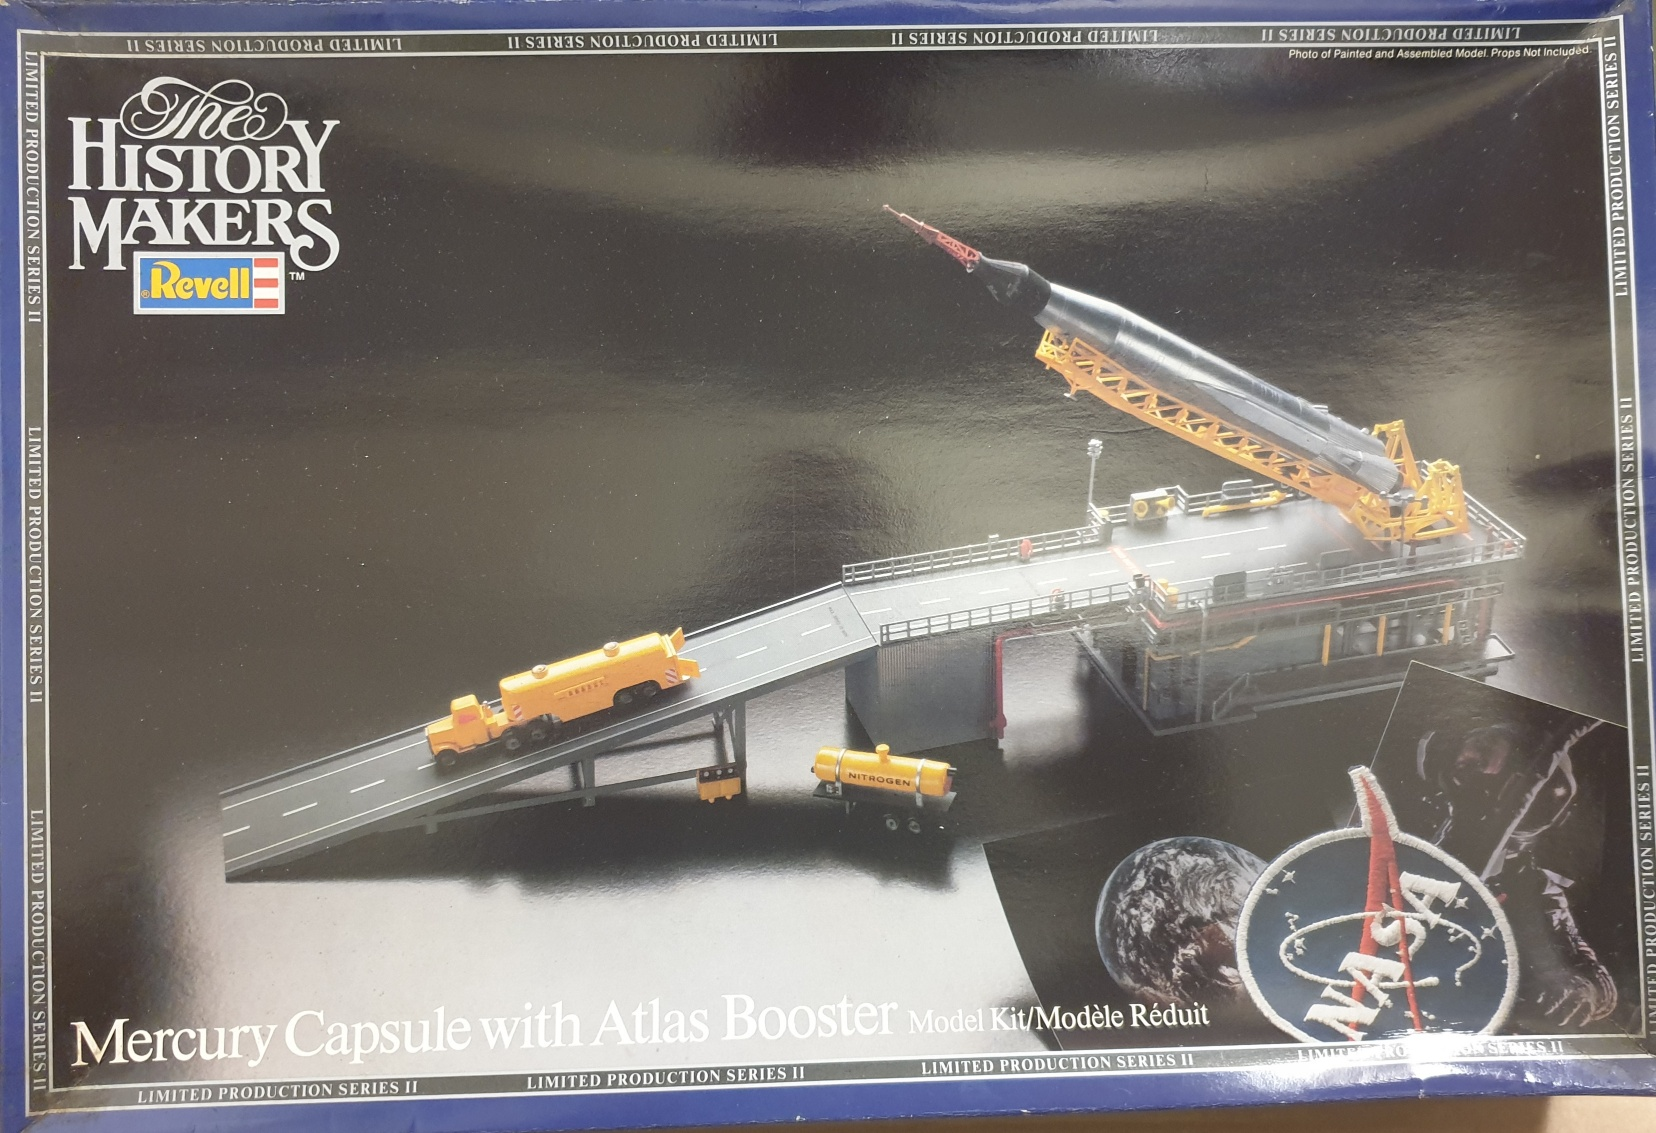 Revell 8647 Mercury Capsule with Atlas Booster